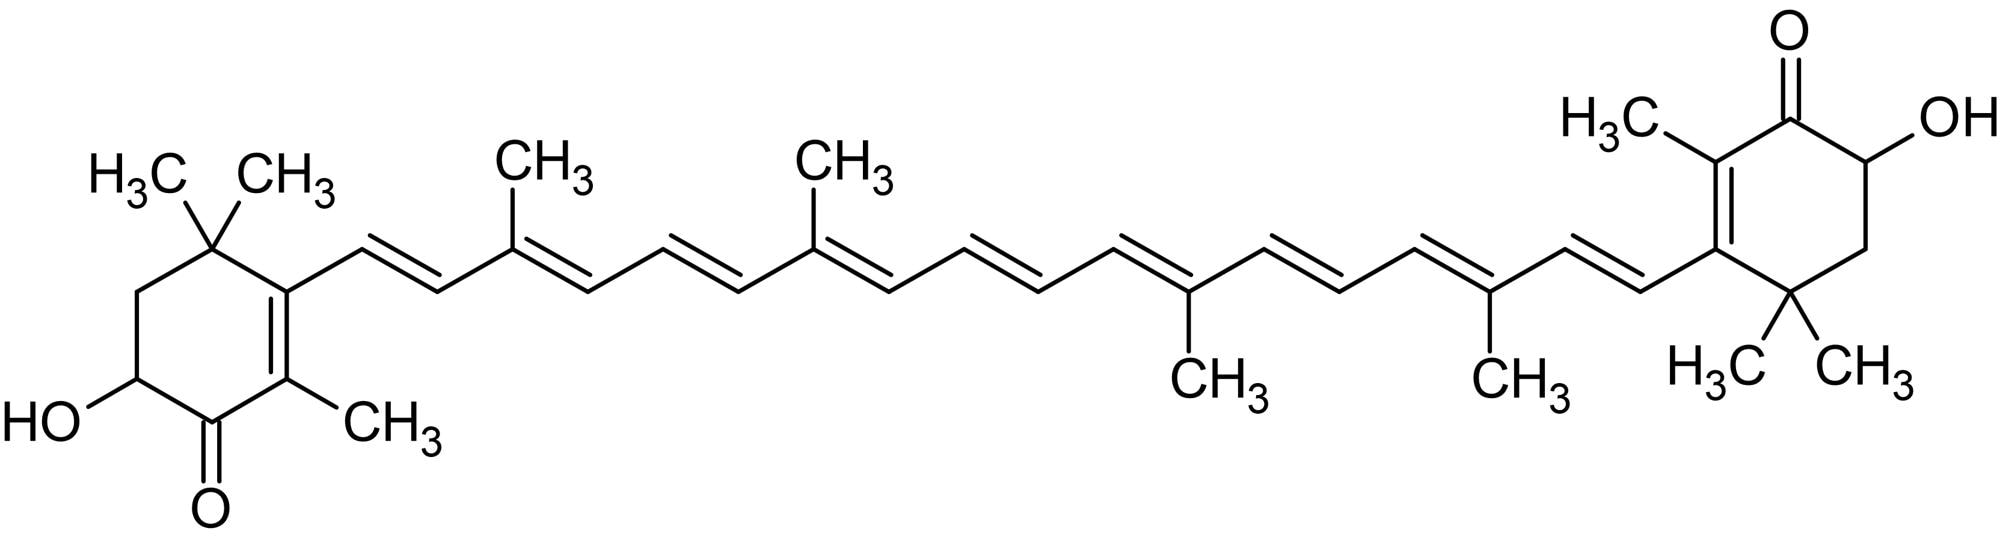 Chemical Structure - Astaxanthin, Antioxidant agent (ab144193)